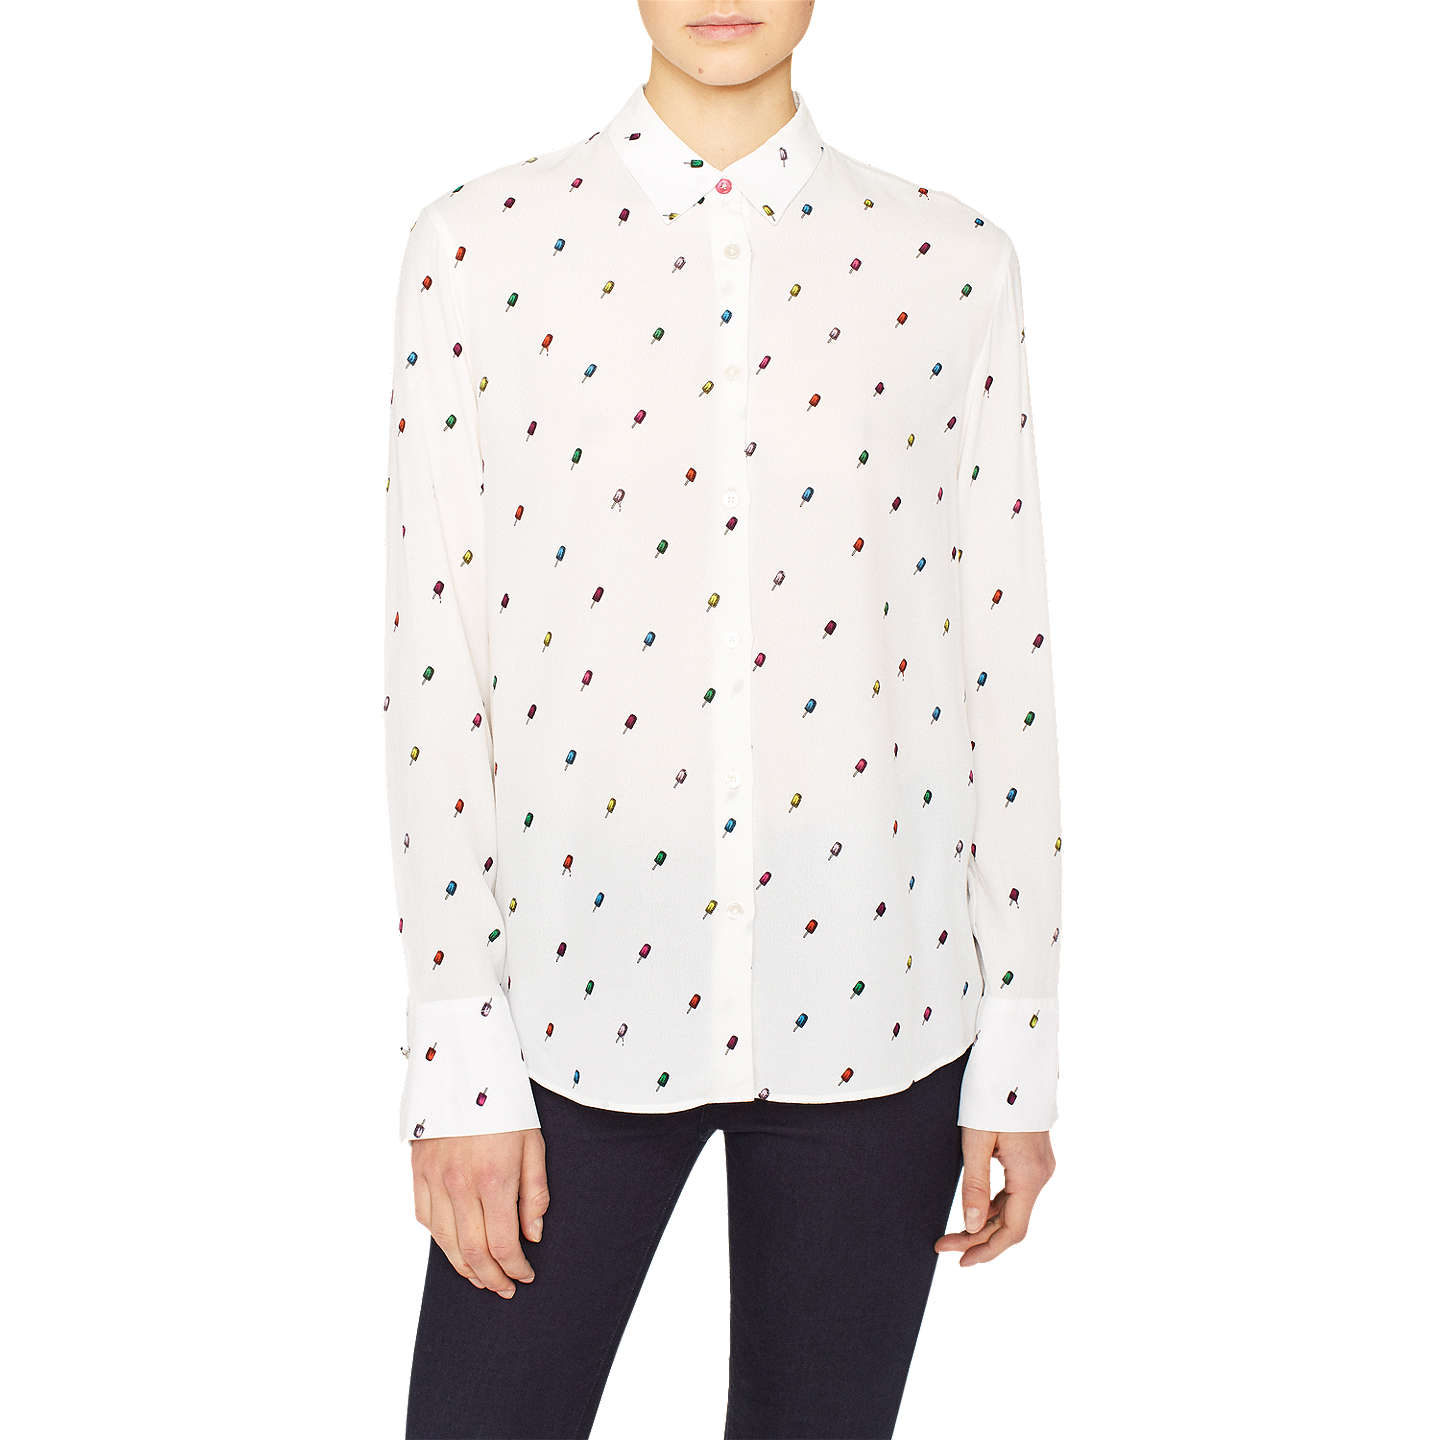 Paul Smith Ice lolly printed shirt